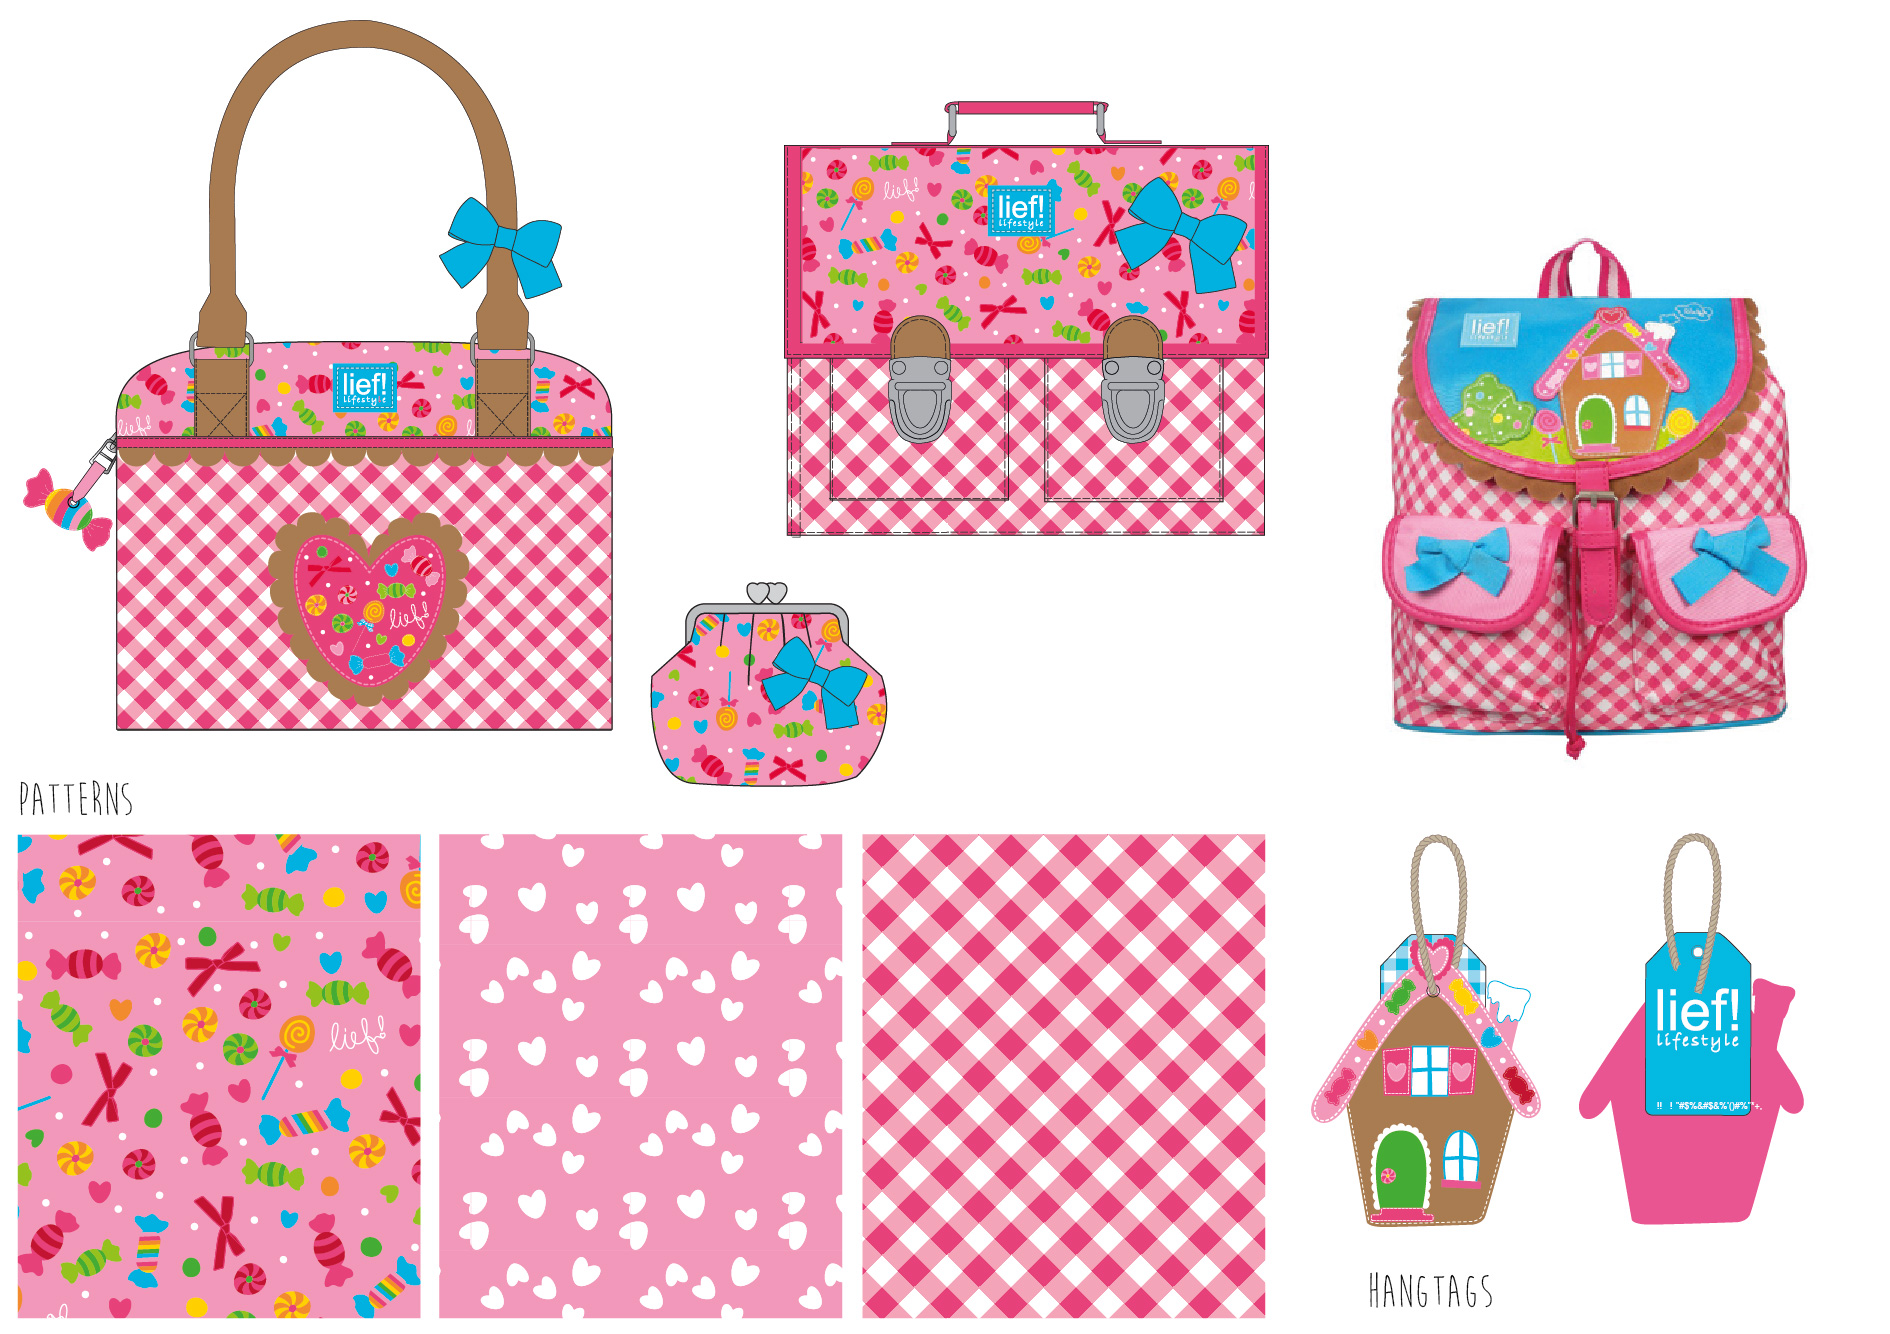 Girls bags lief! lifestyle